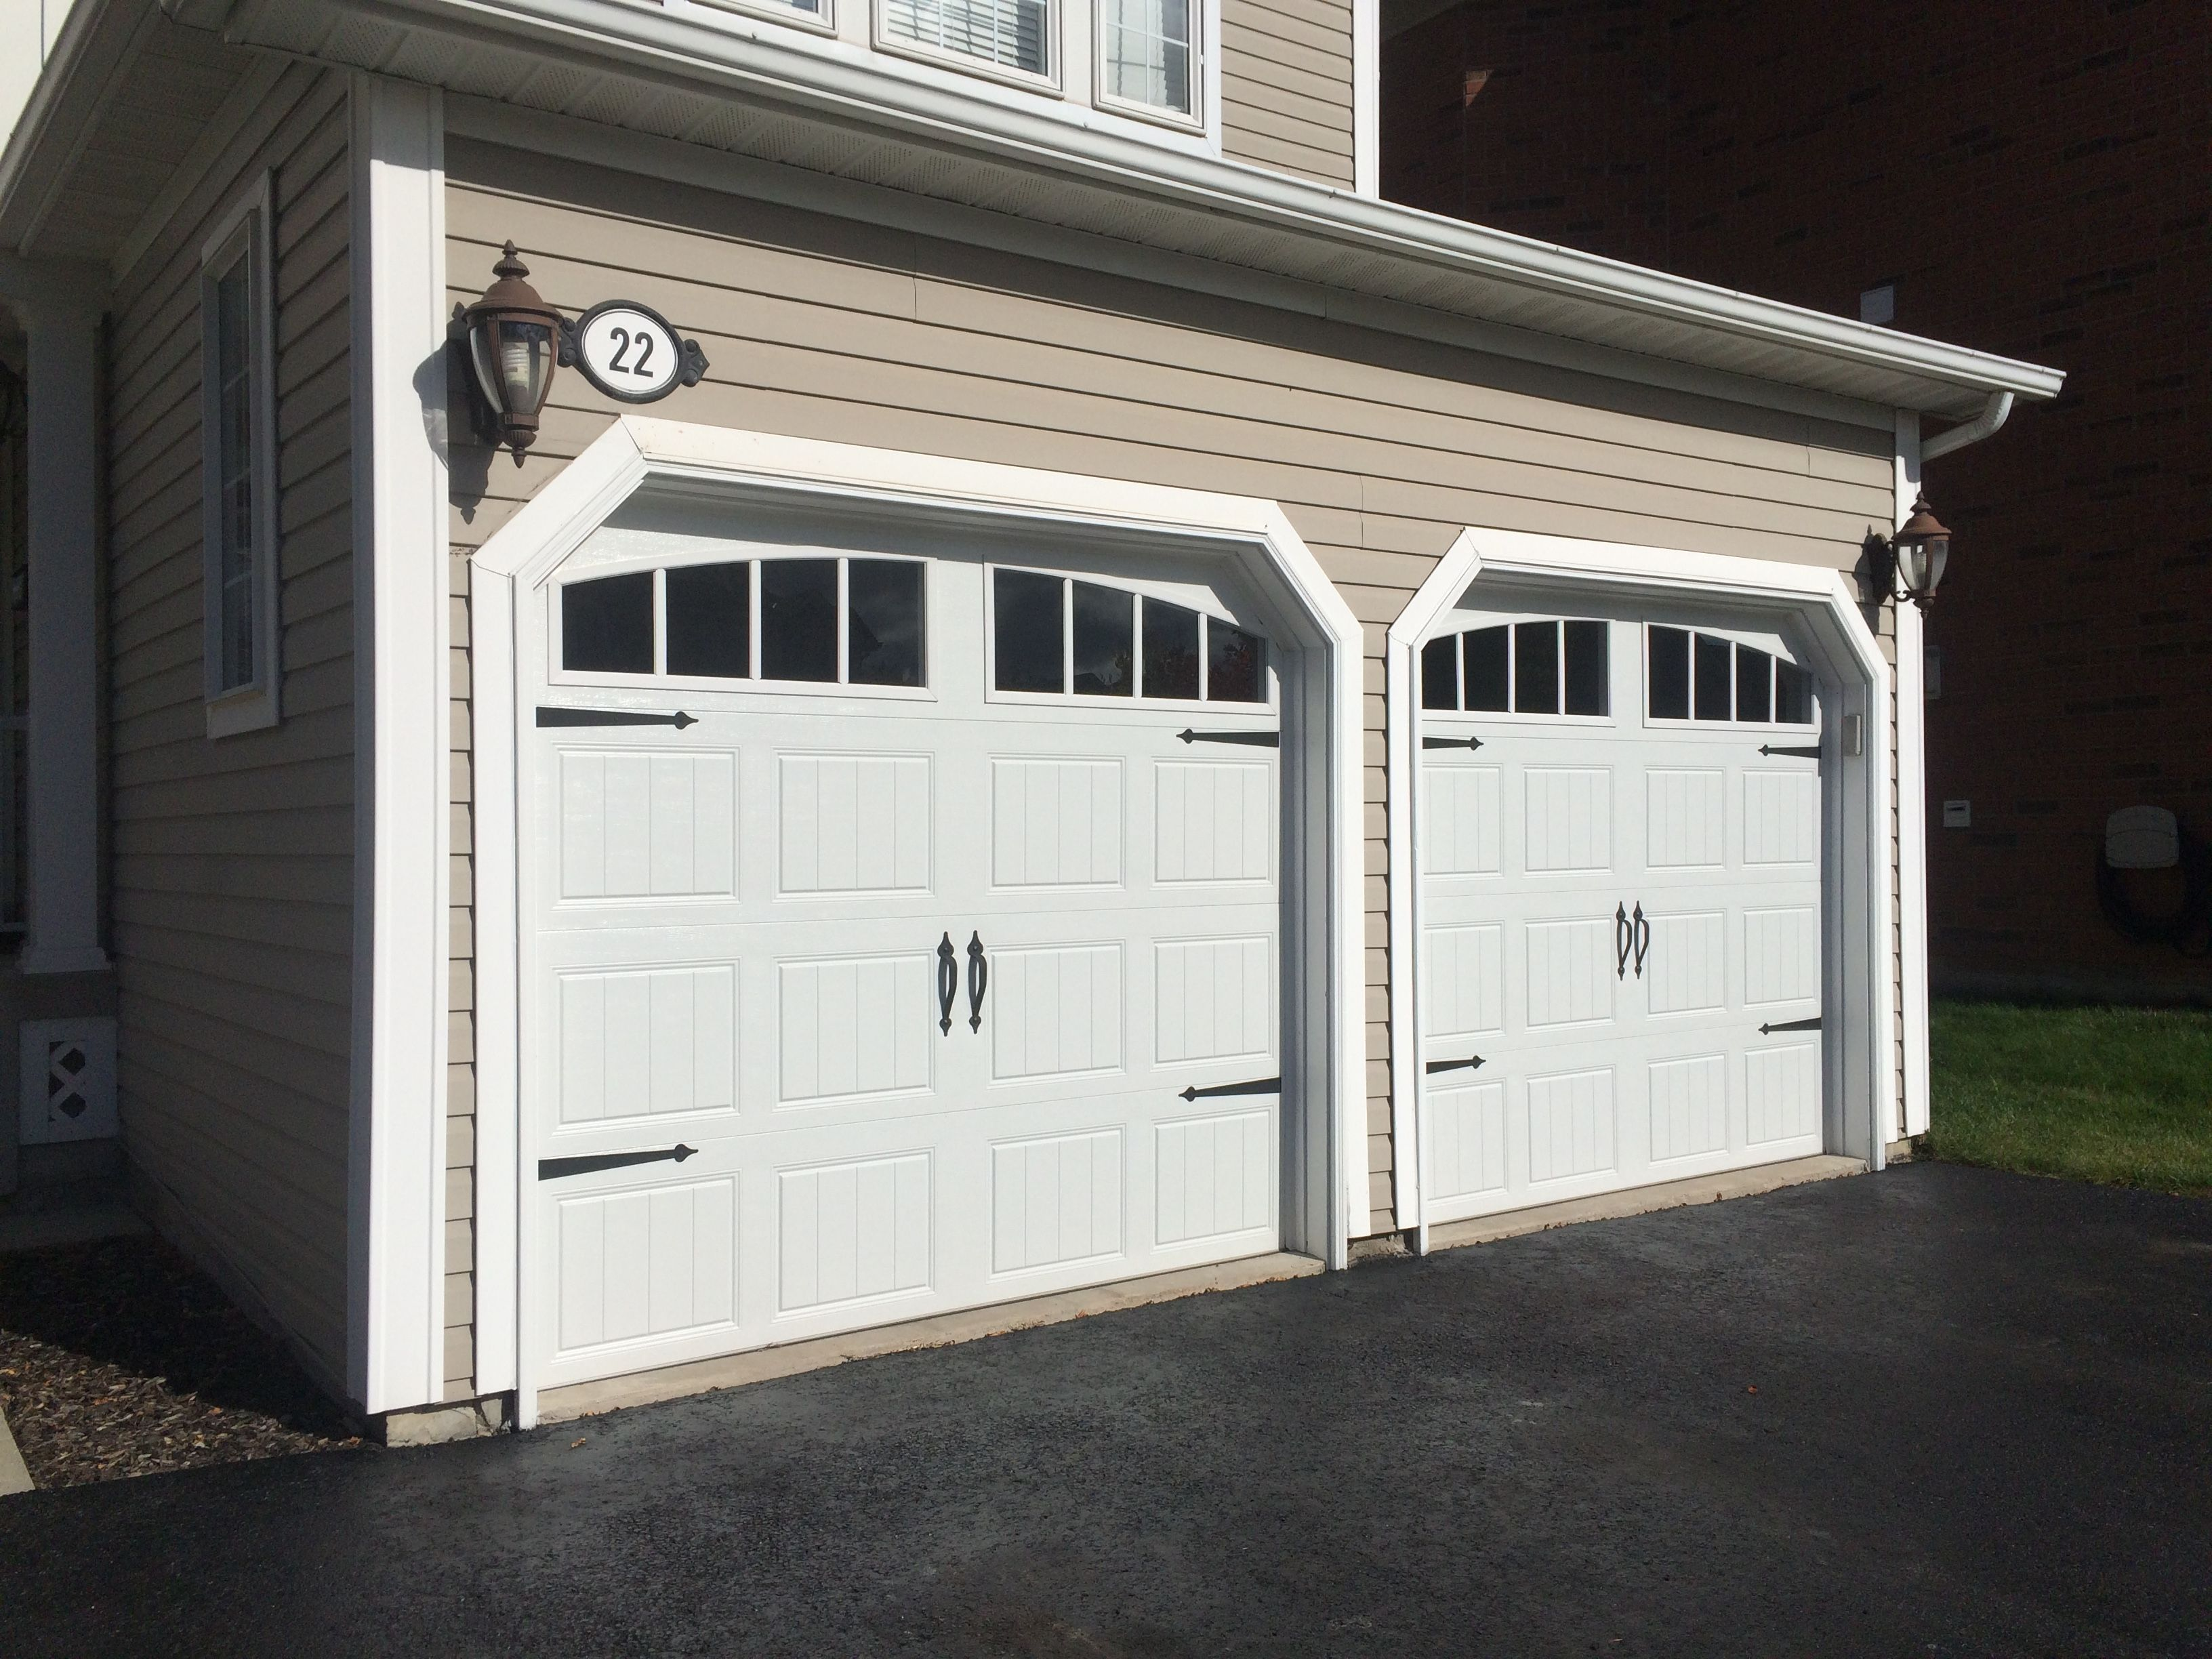 Arched Garage Doors With Windows Intended For Your Own Home